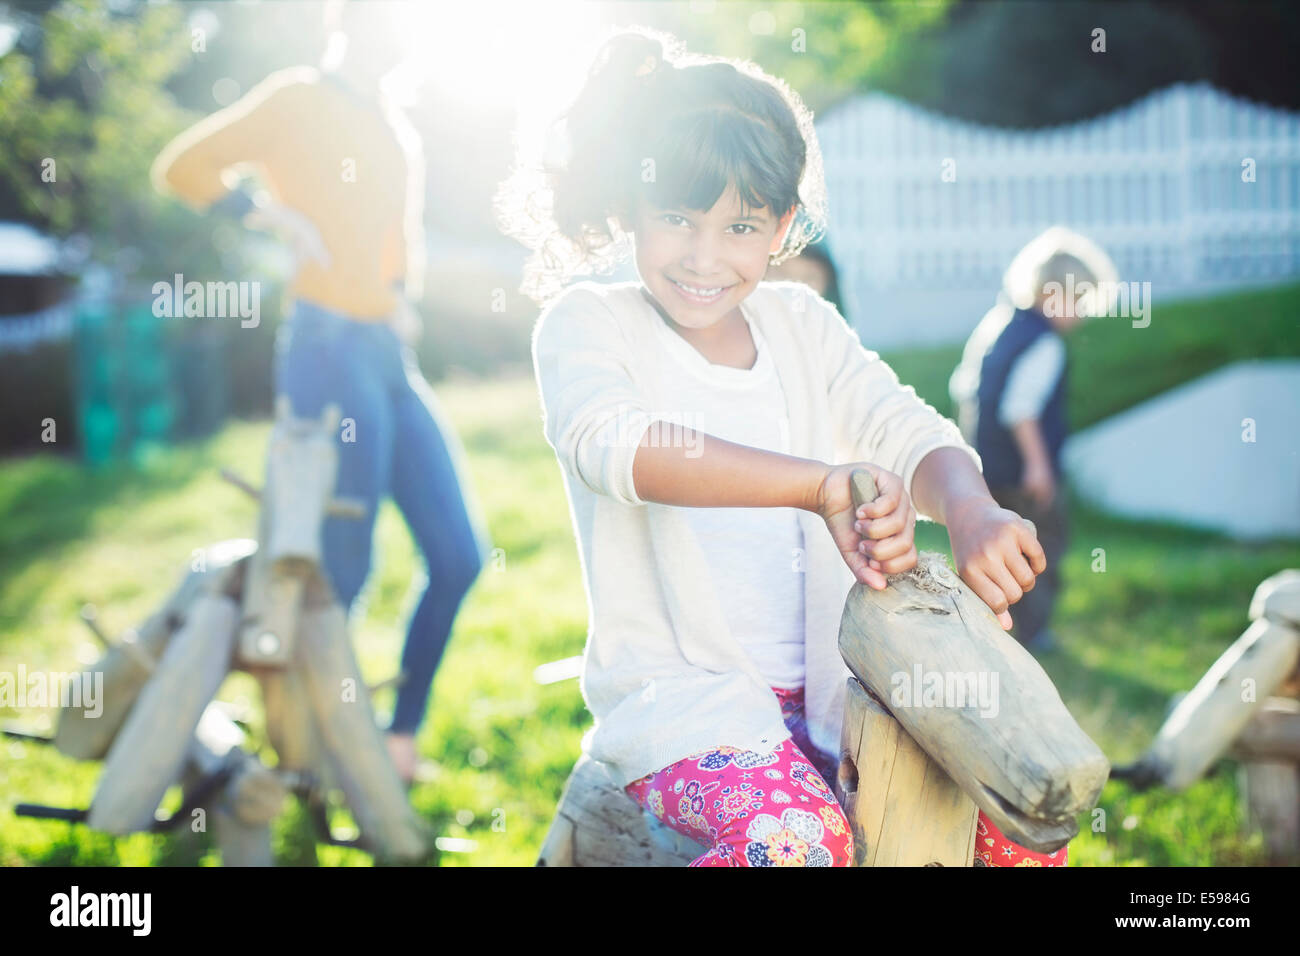 Girl smiling on Rocking Horse in playground Photo Stock